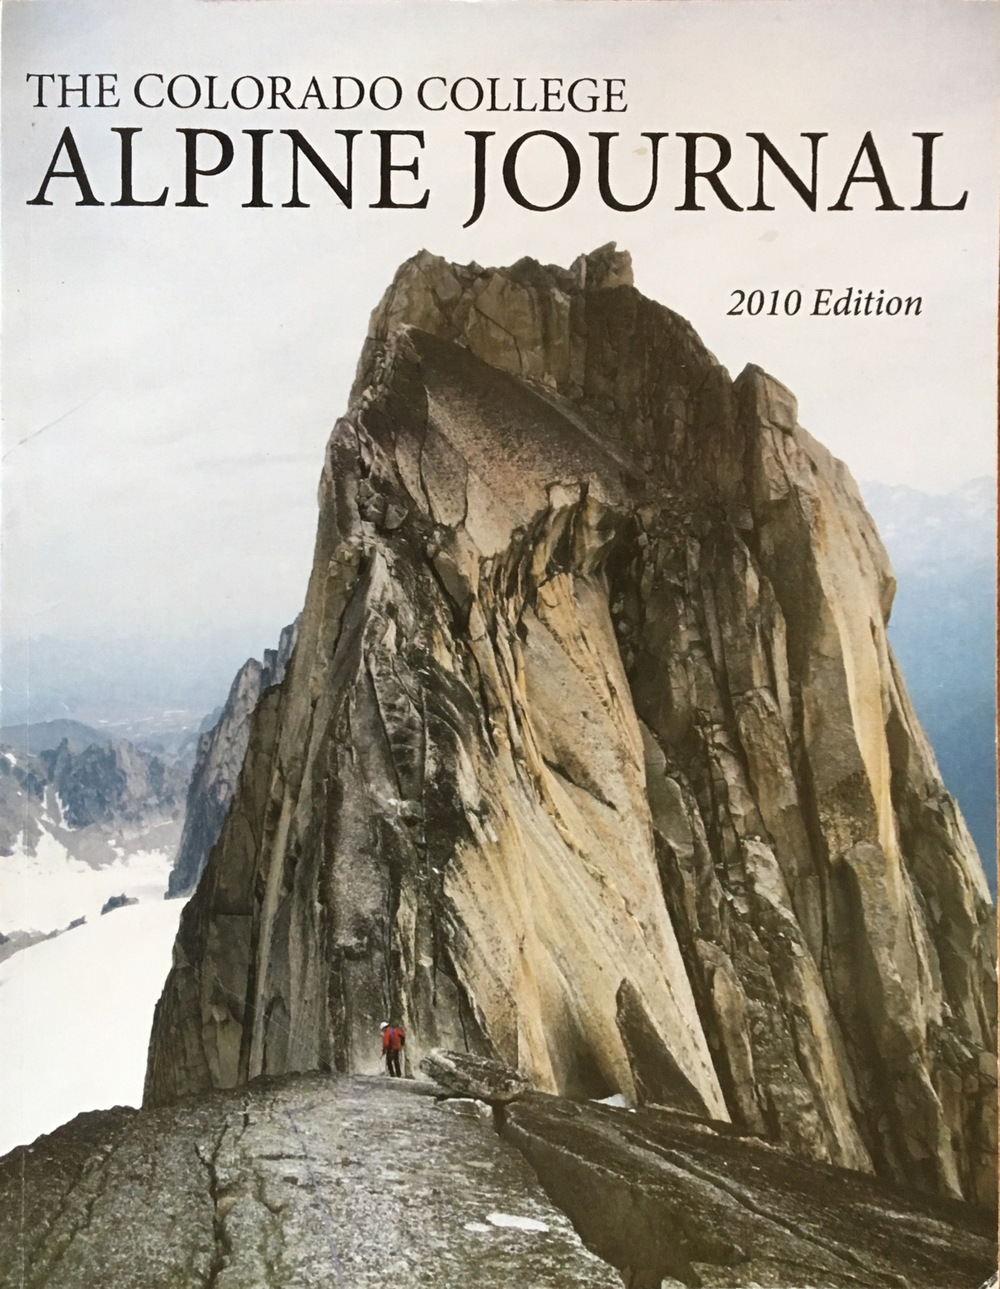 Women at Work  Trip report, photos: A first free ascent of the crux pitches of the Original 1963 Route on Mount Proboscis.  Colorado College Alpine Journal, 2010